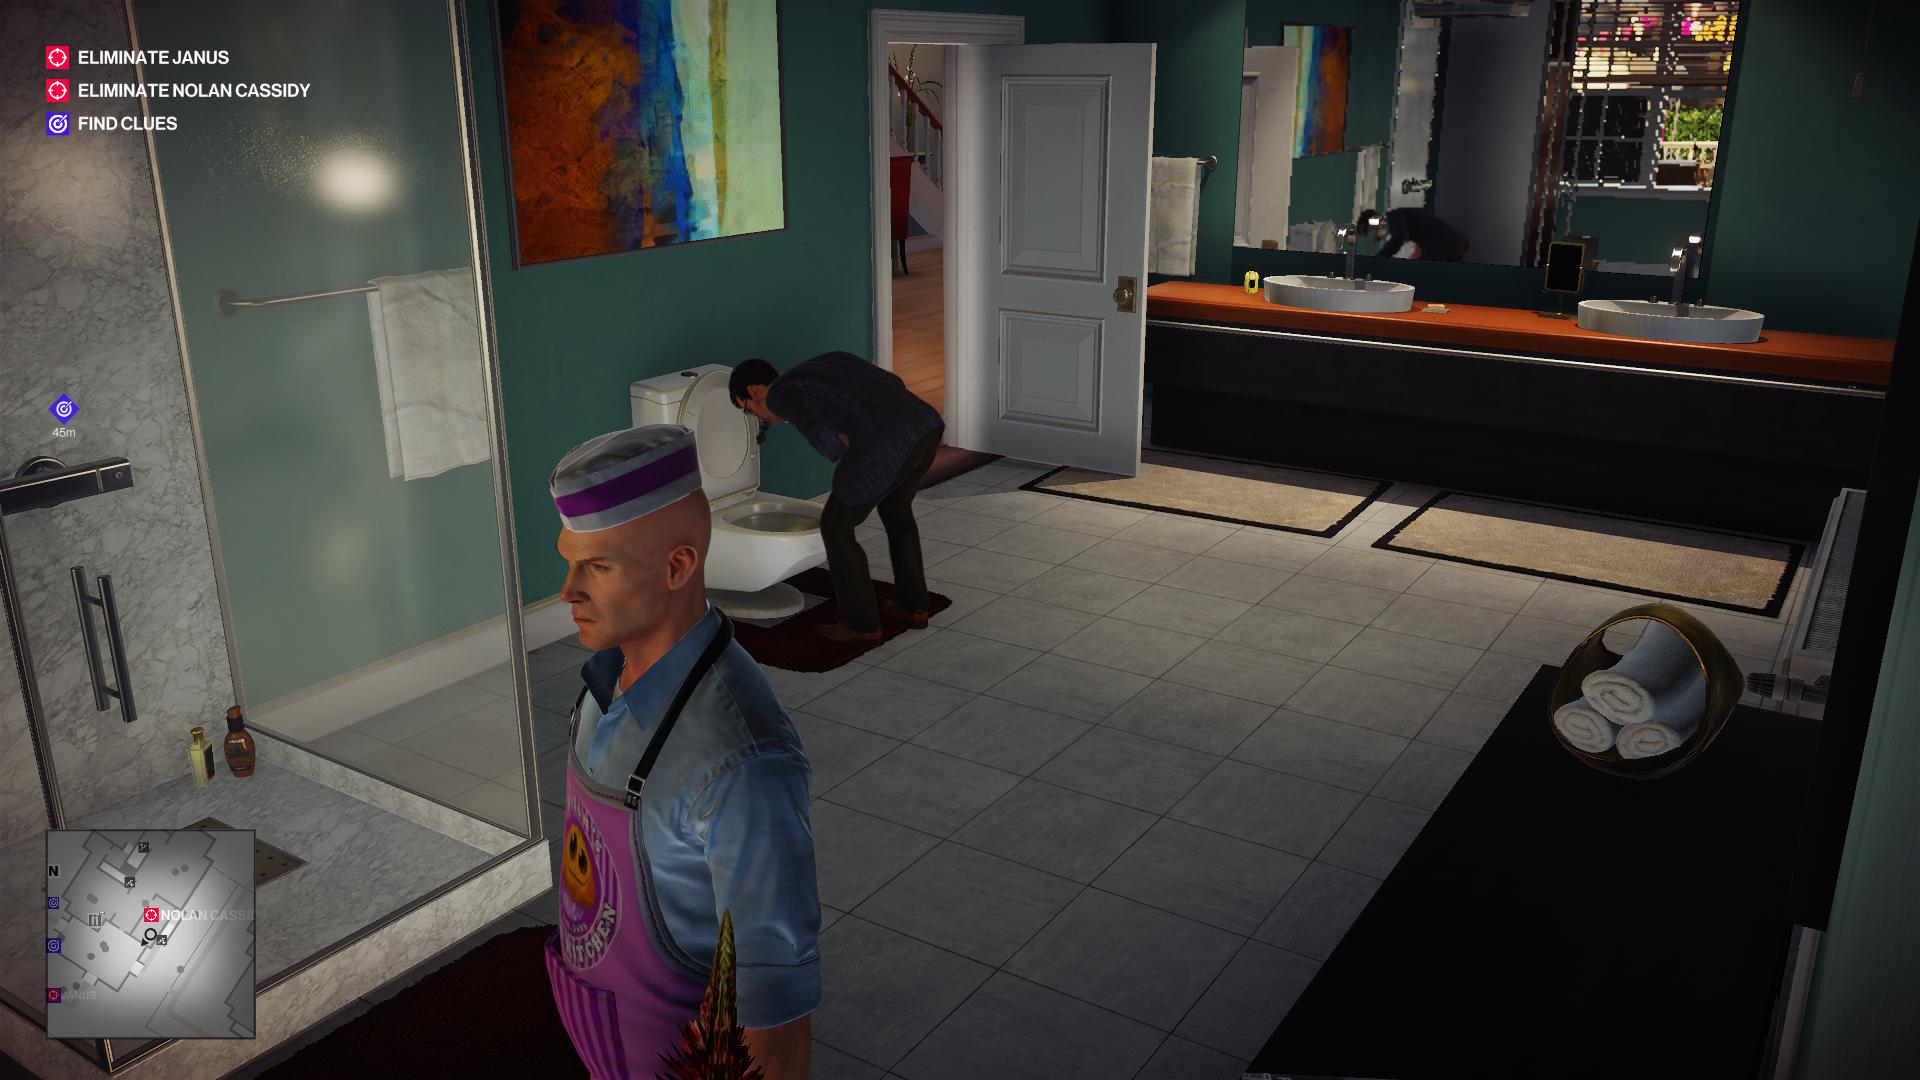 Agent 47 dressed as a burger salesman looking suspicious as a man throws up in the toilet nearby.